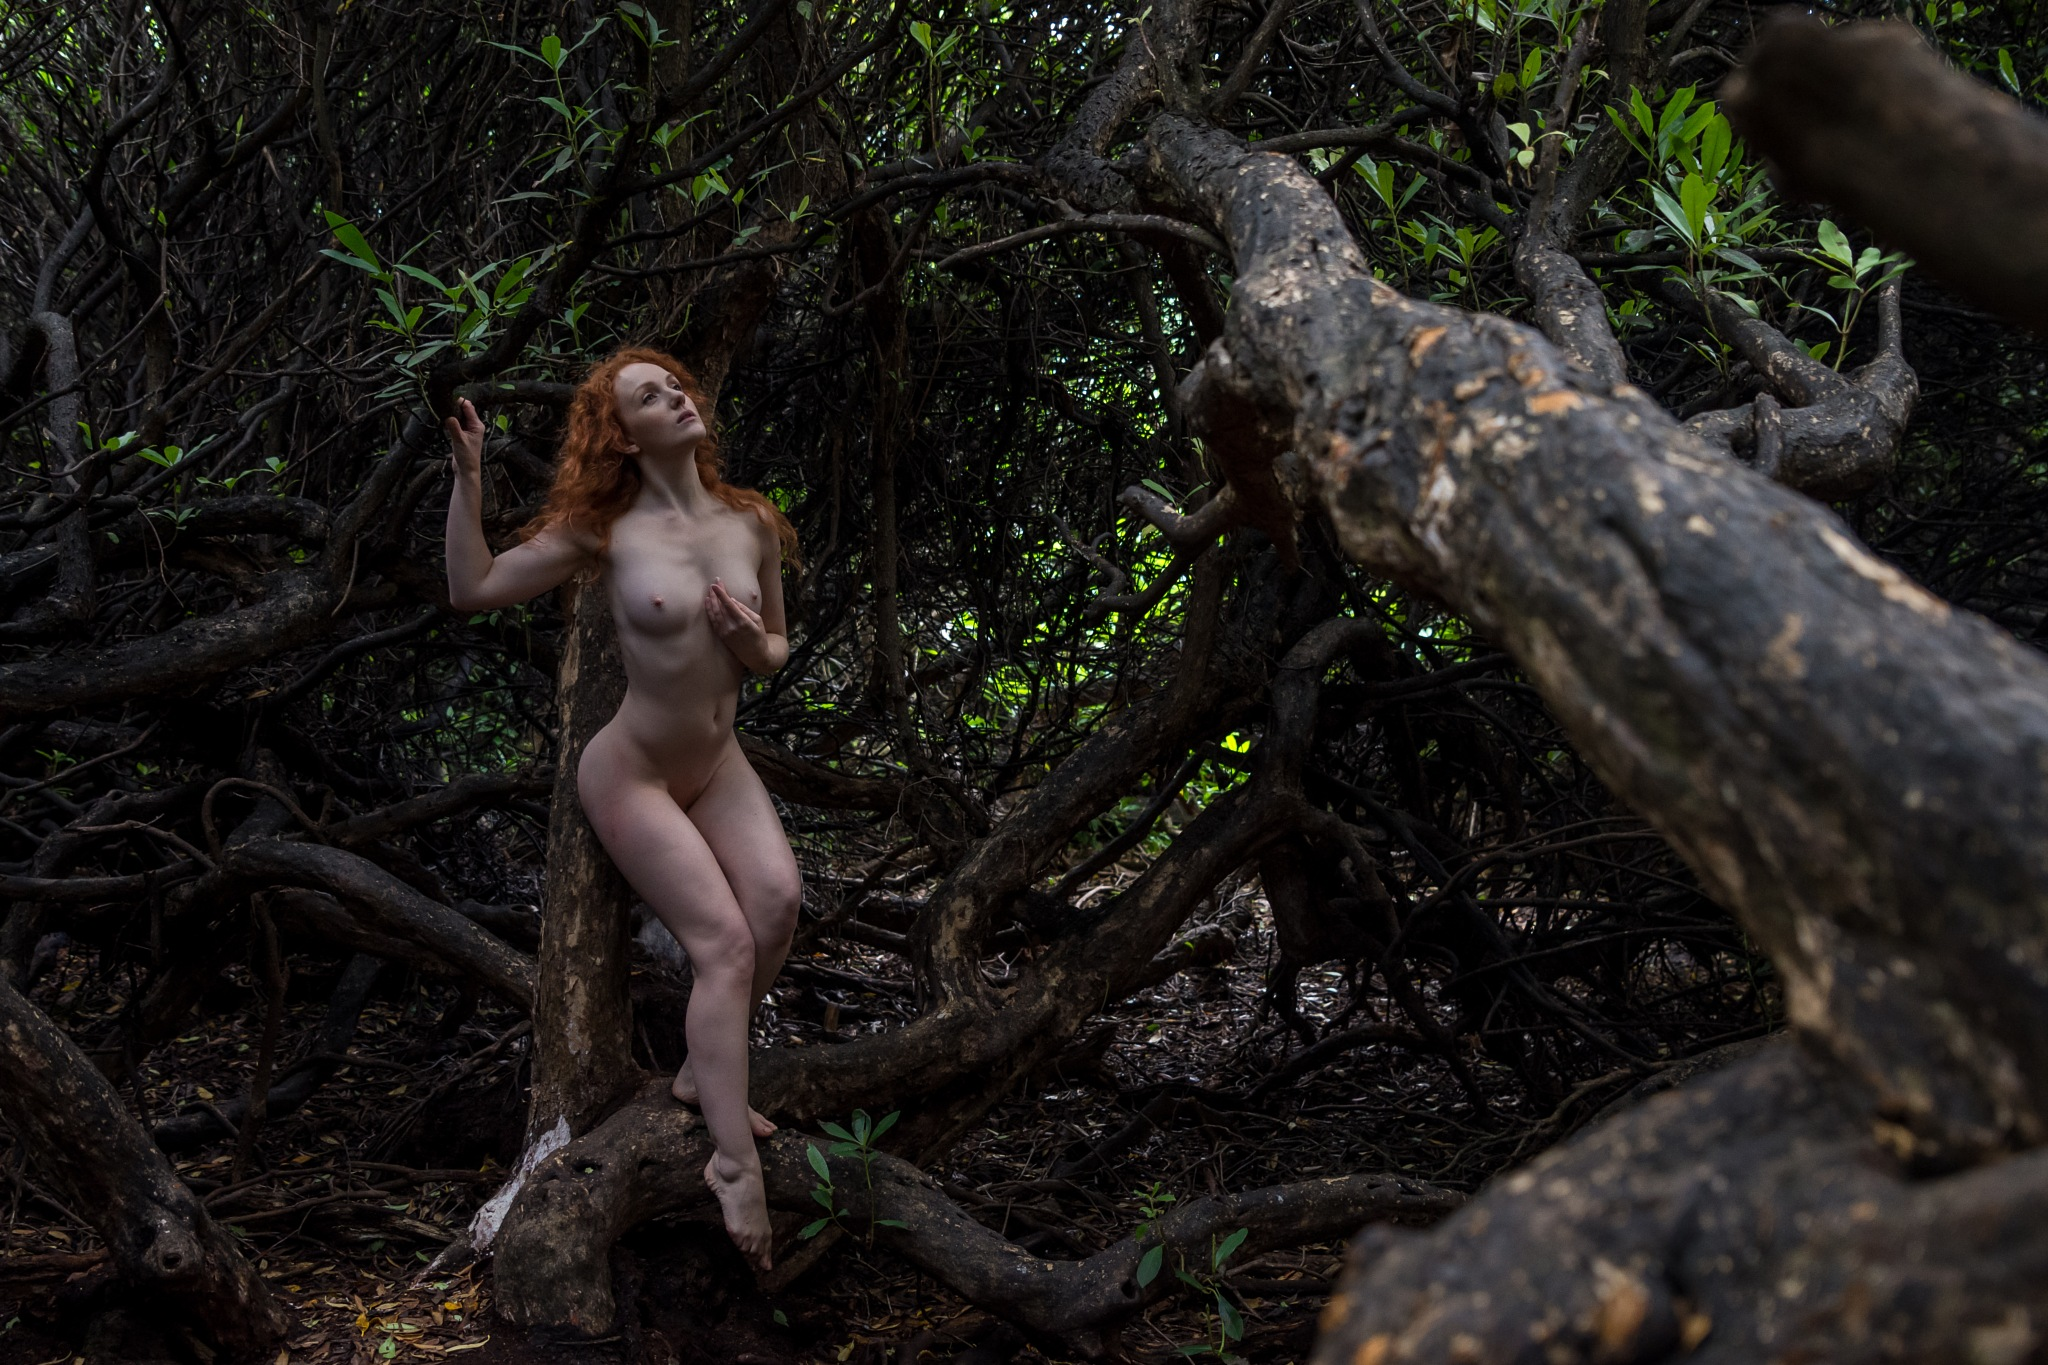 Nude in labyrinth by D Whitehead